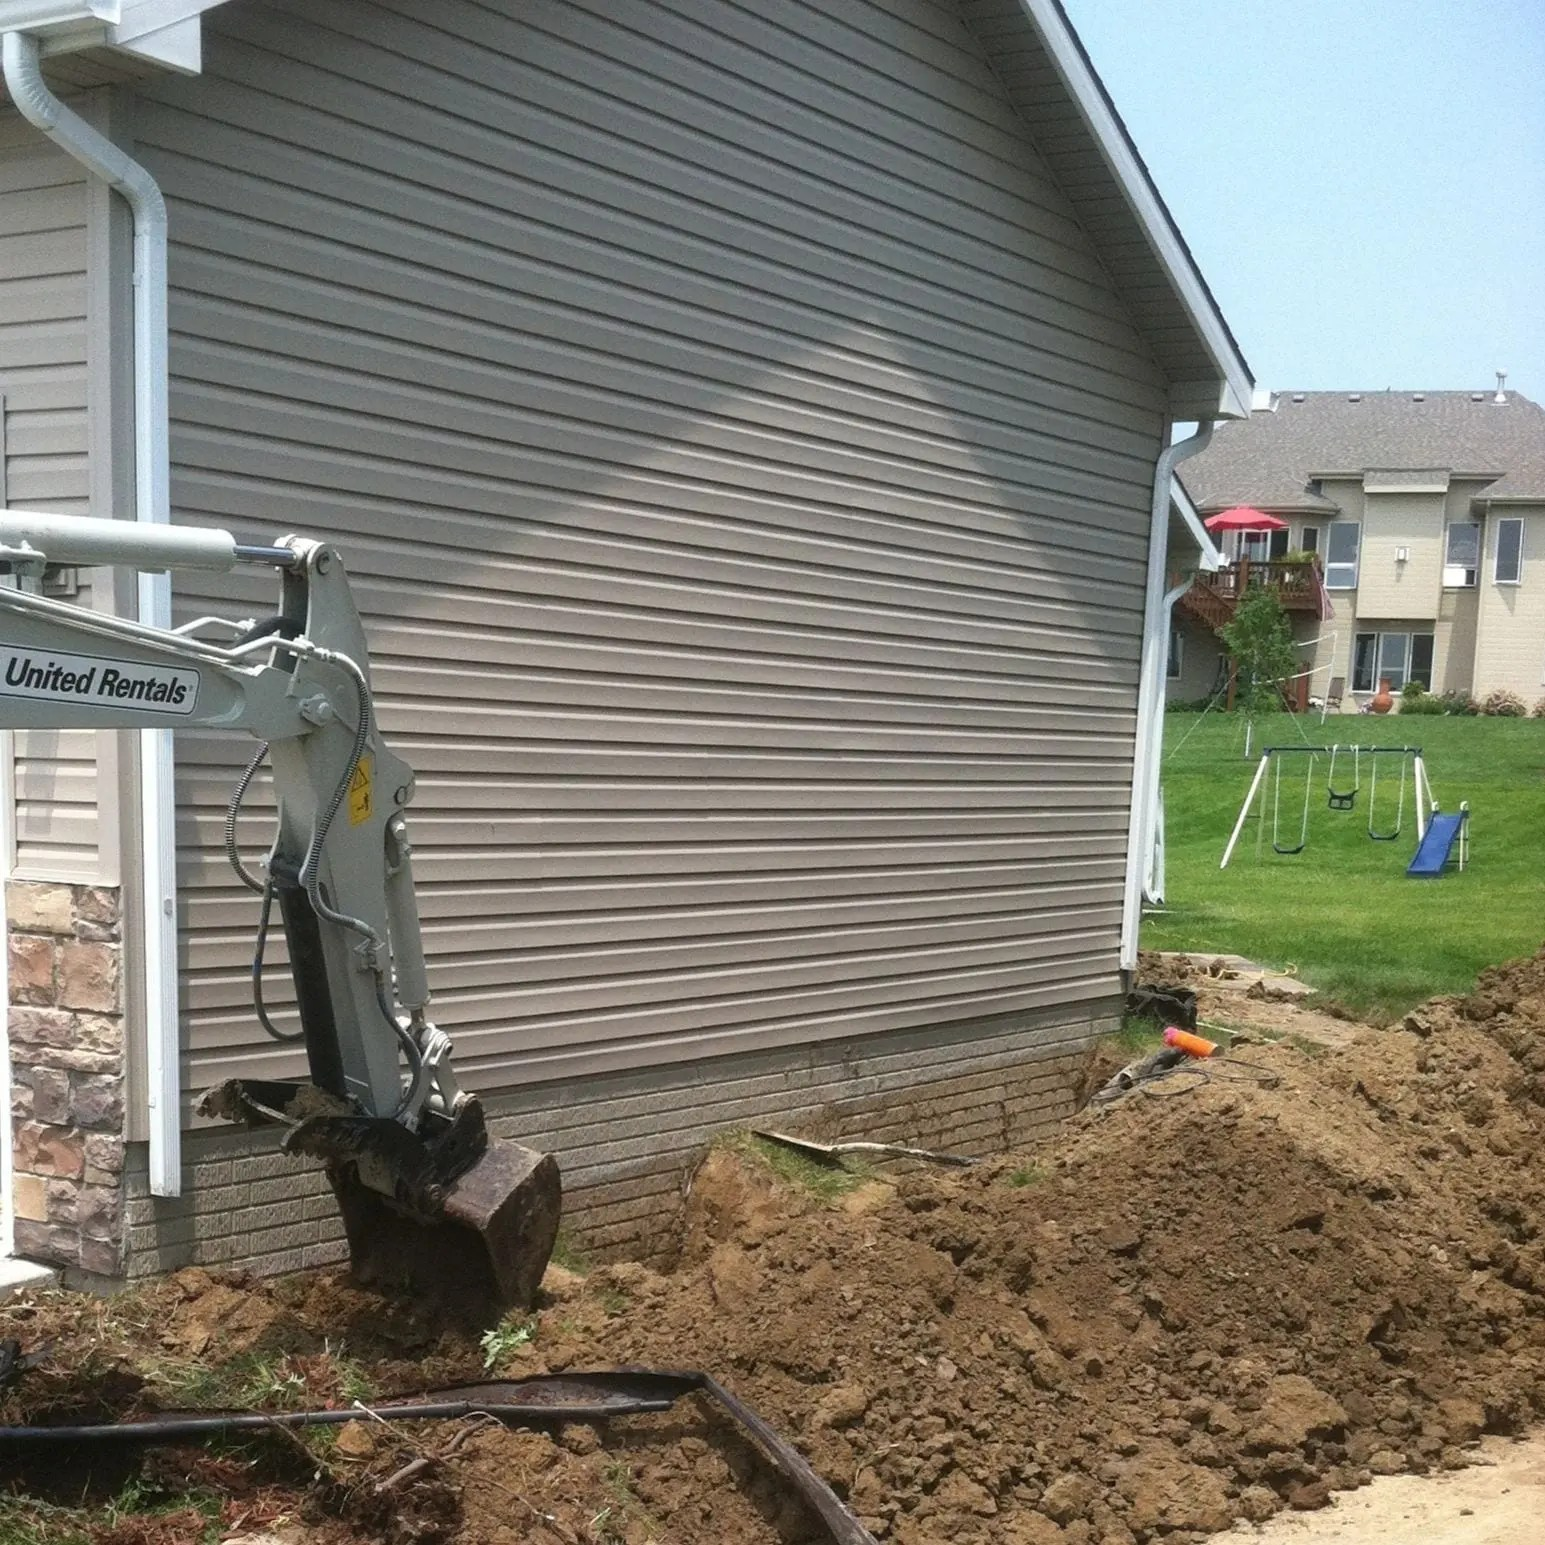 Excavation in preparation for applying a foundation waterproofing membrane to a home's foundation